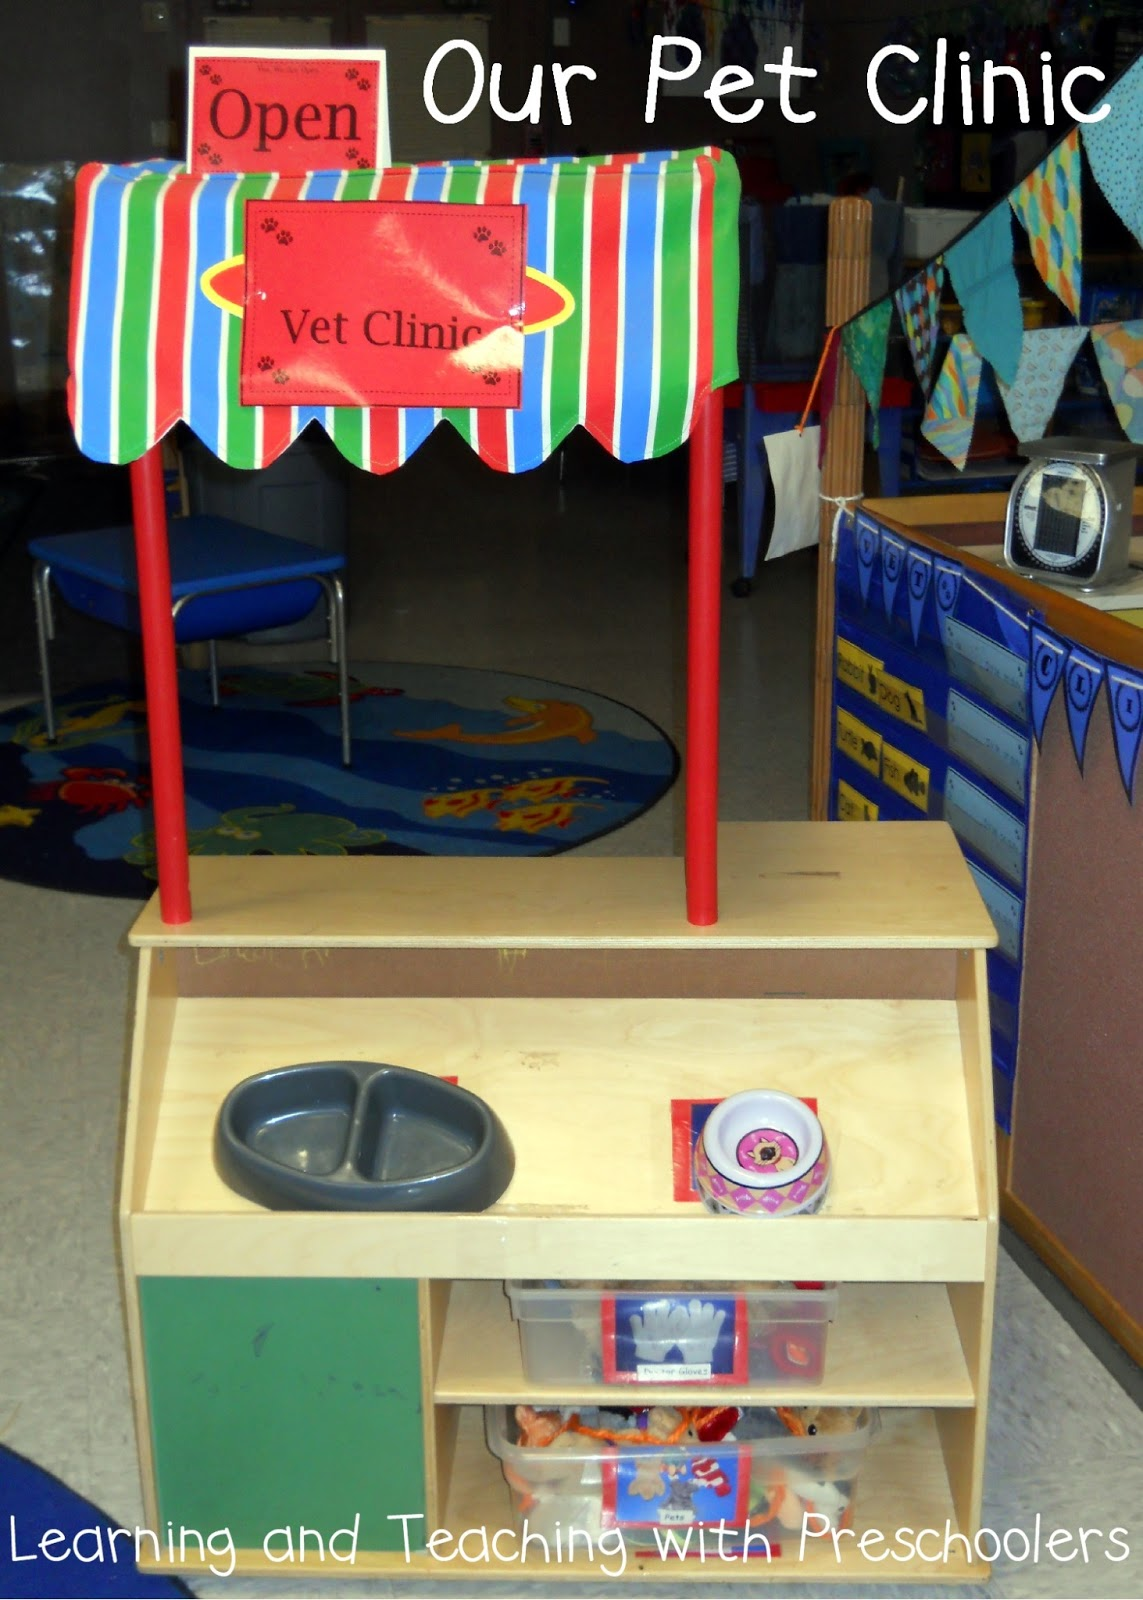 Learning and Teaching With Preschoolers: Pet Clinic ... - photo#41